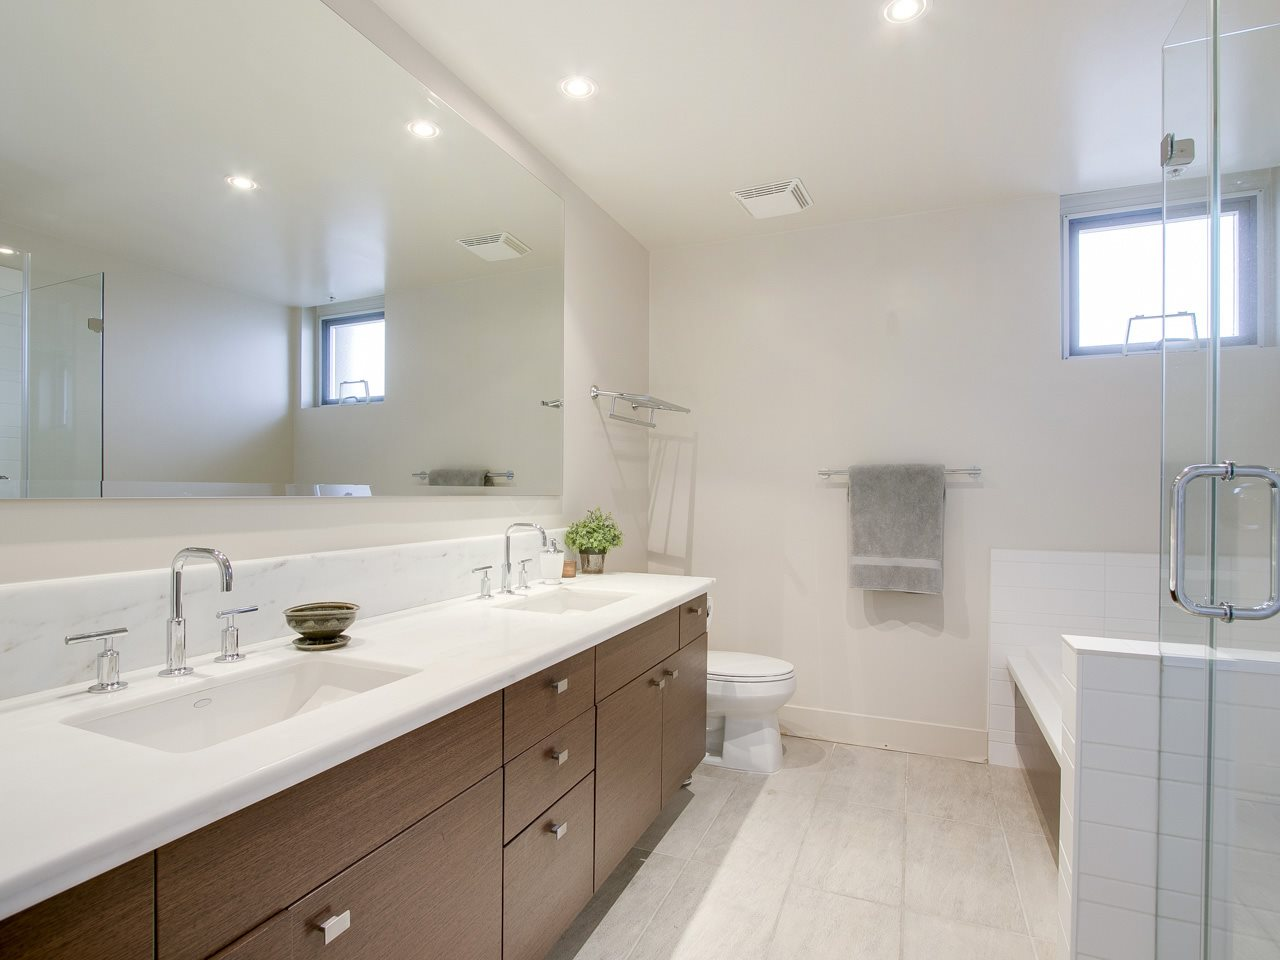 Photo 14: 113 6018 IONA DRIVE in Vancouver: University VW Townhouse for sale (Vancouver West)  : MLS® # R2146501